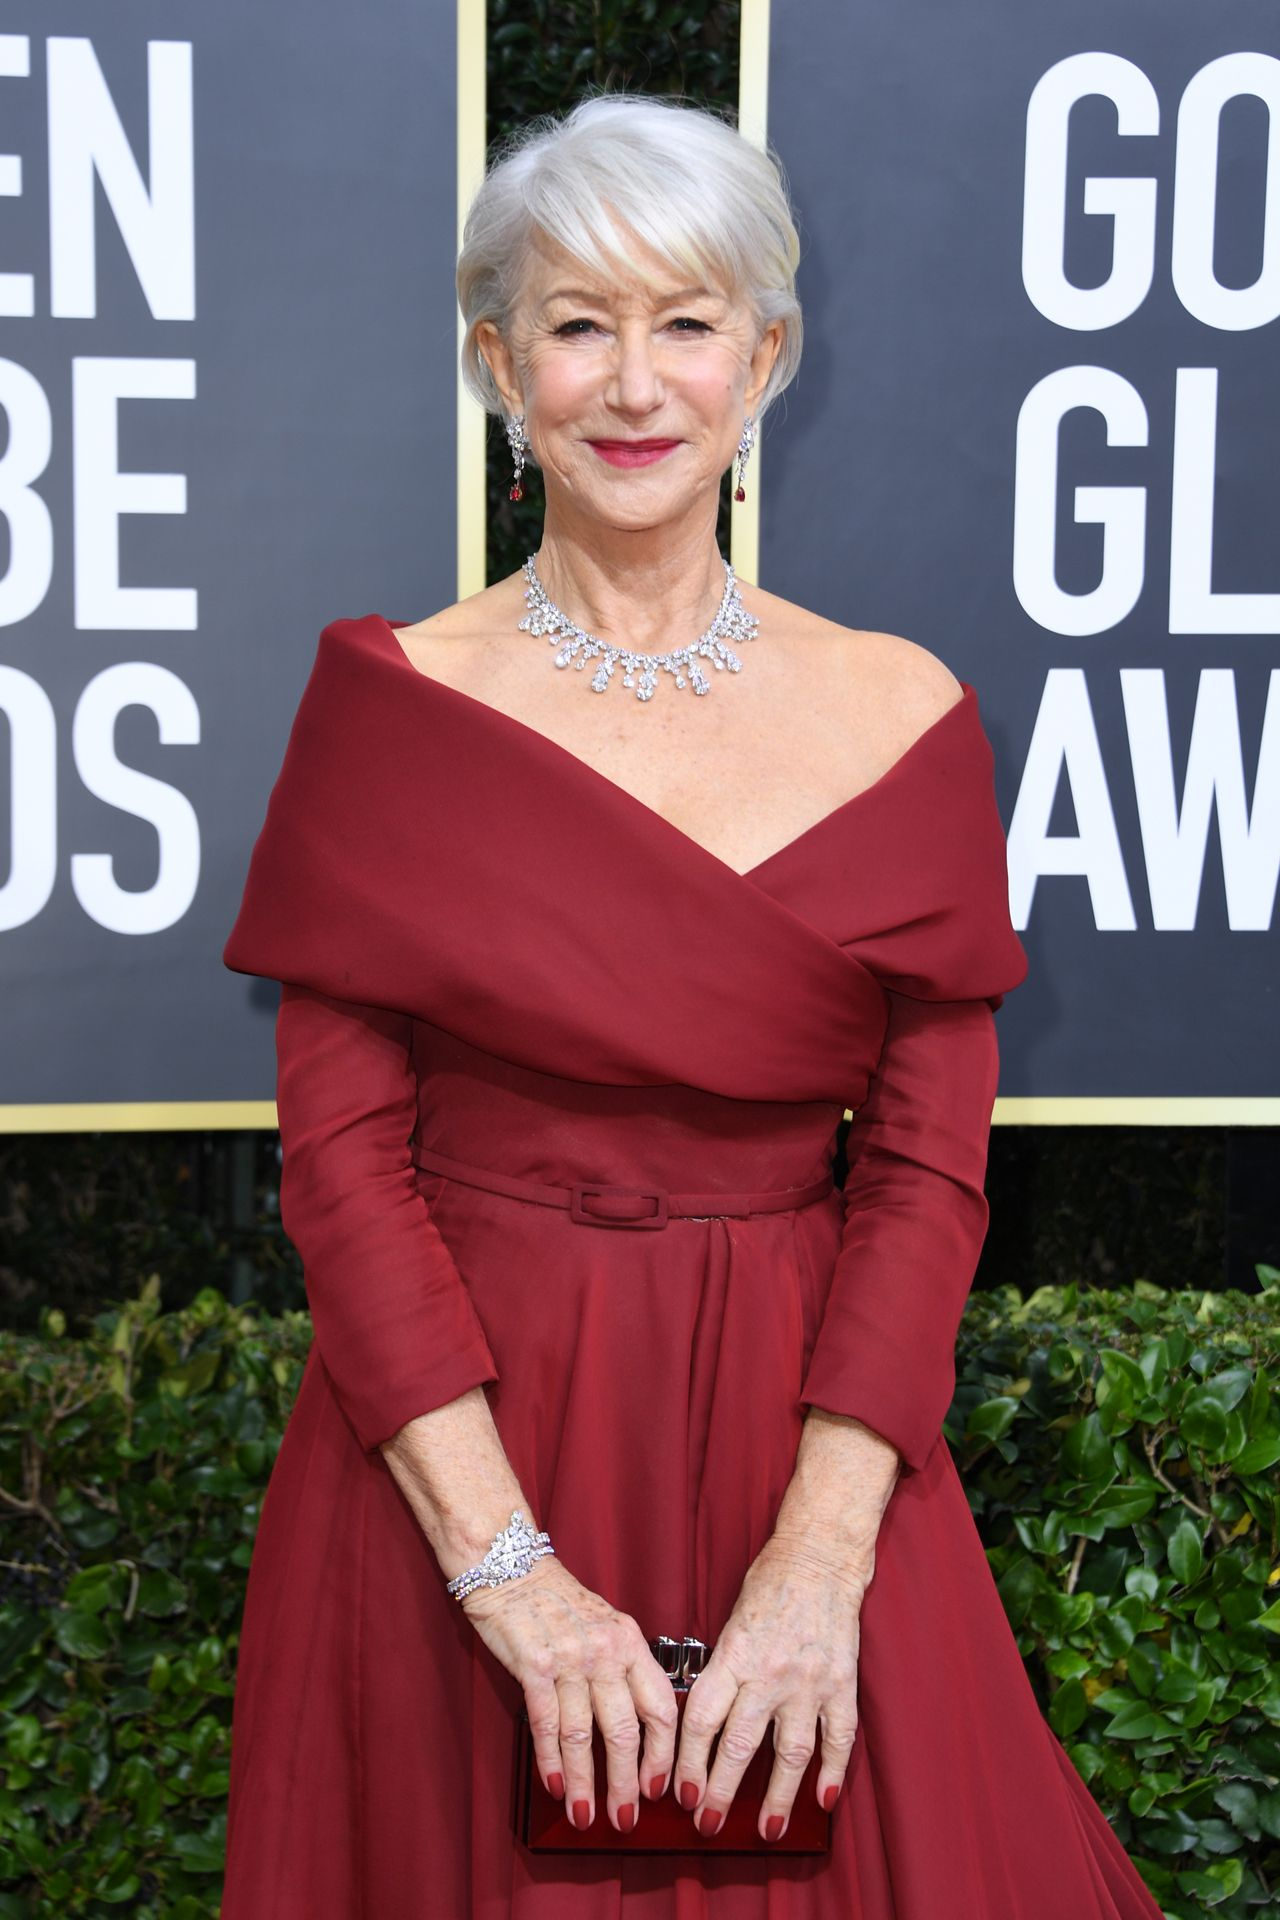 British actress Helen Mirren arrives for the 77th annual Golden Globe Awards on January 5, 2020, at The Beverly Hilton hotel in Beverly Hills, California. (Photo by VALERIE MACON / AFP)